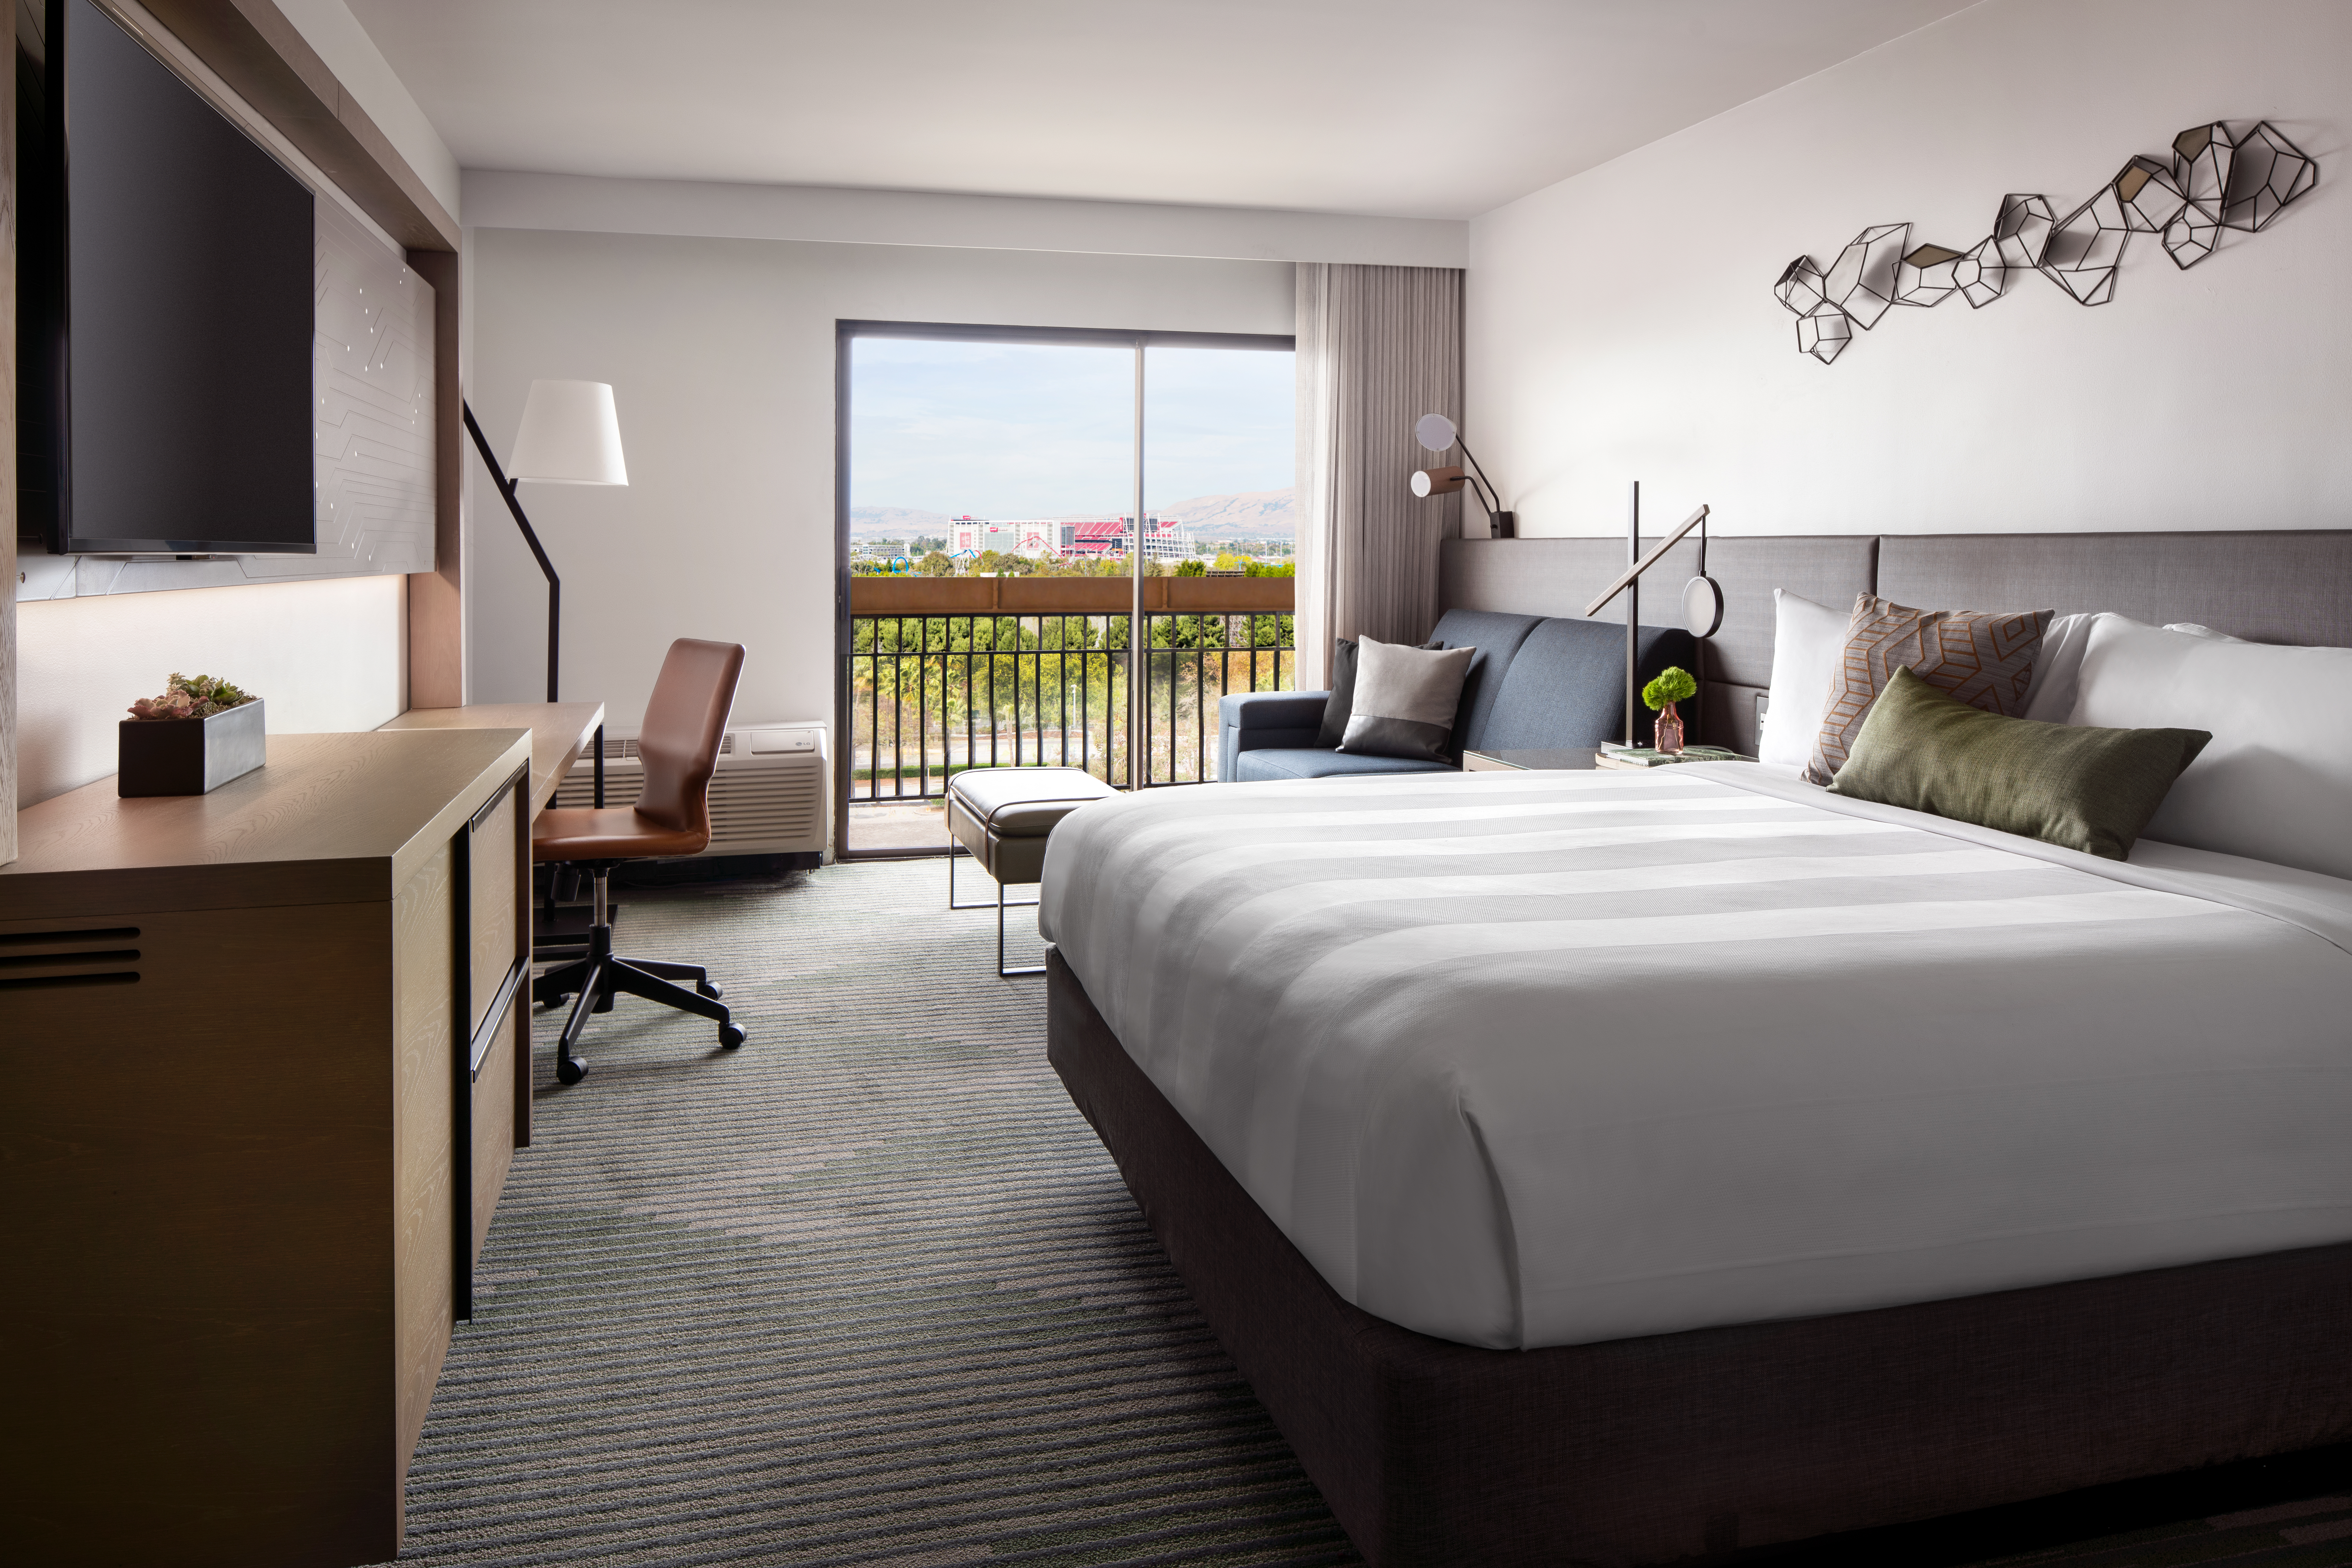 Guestrooms have details like circuit board-styled artwork.